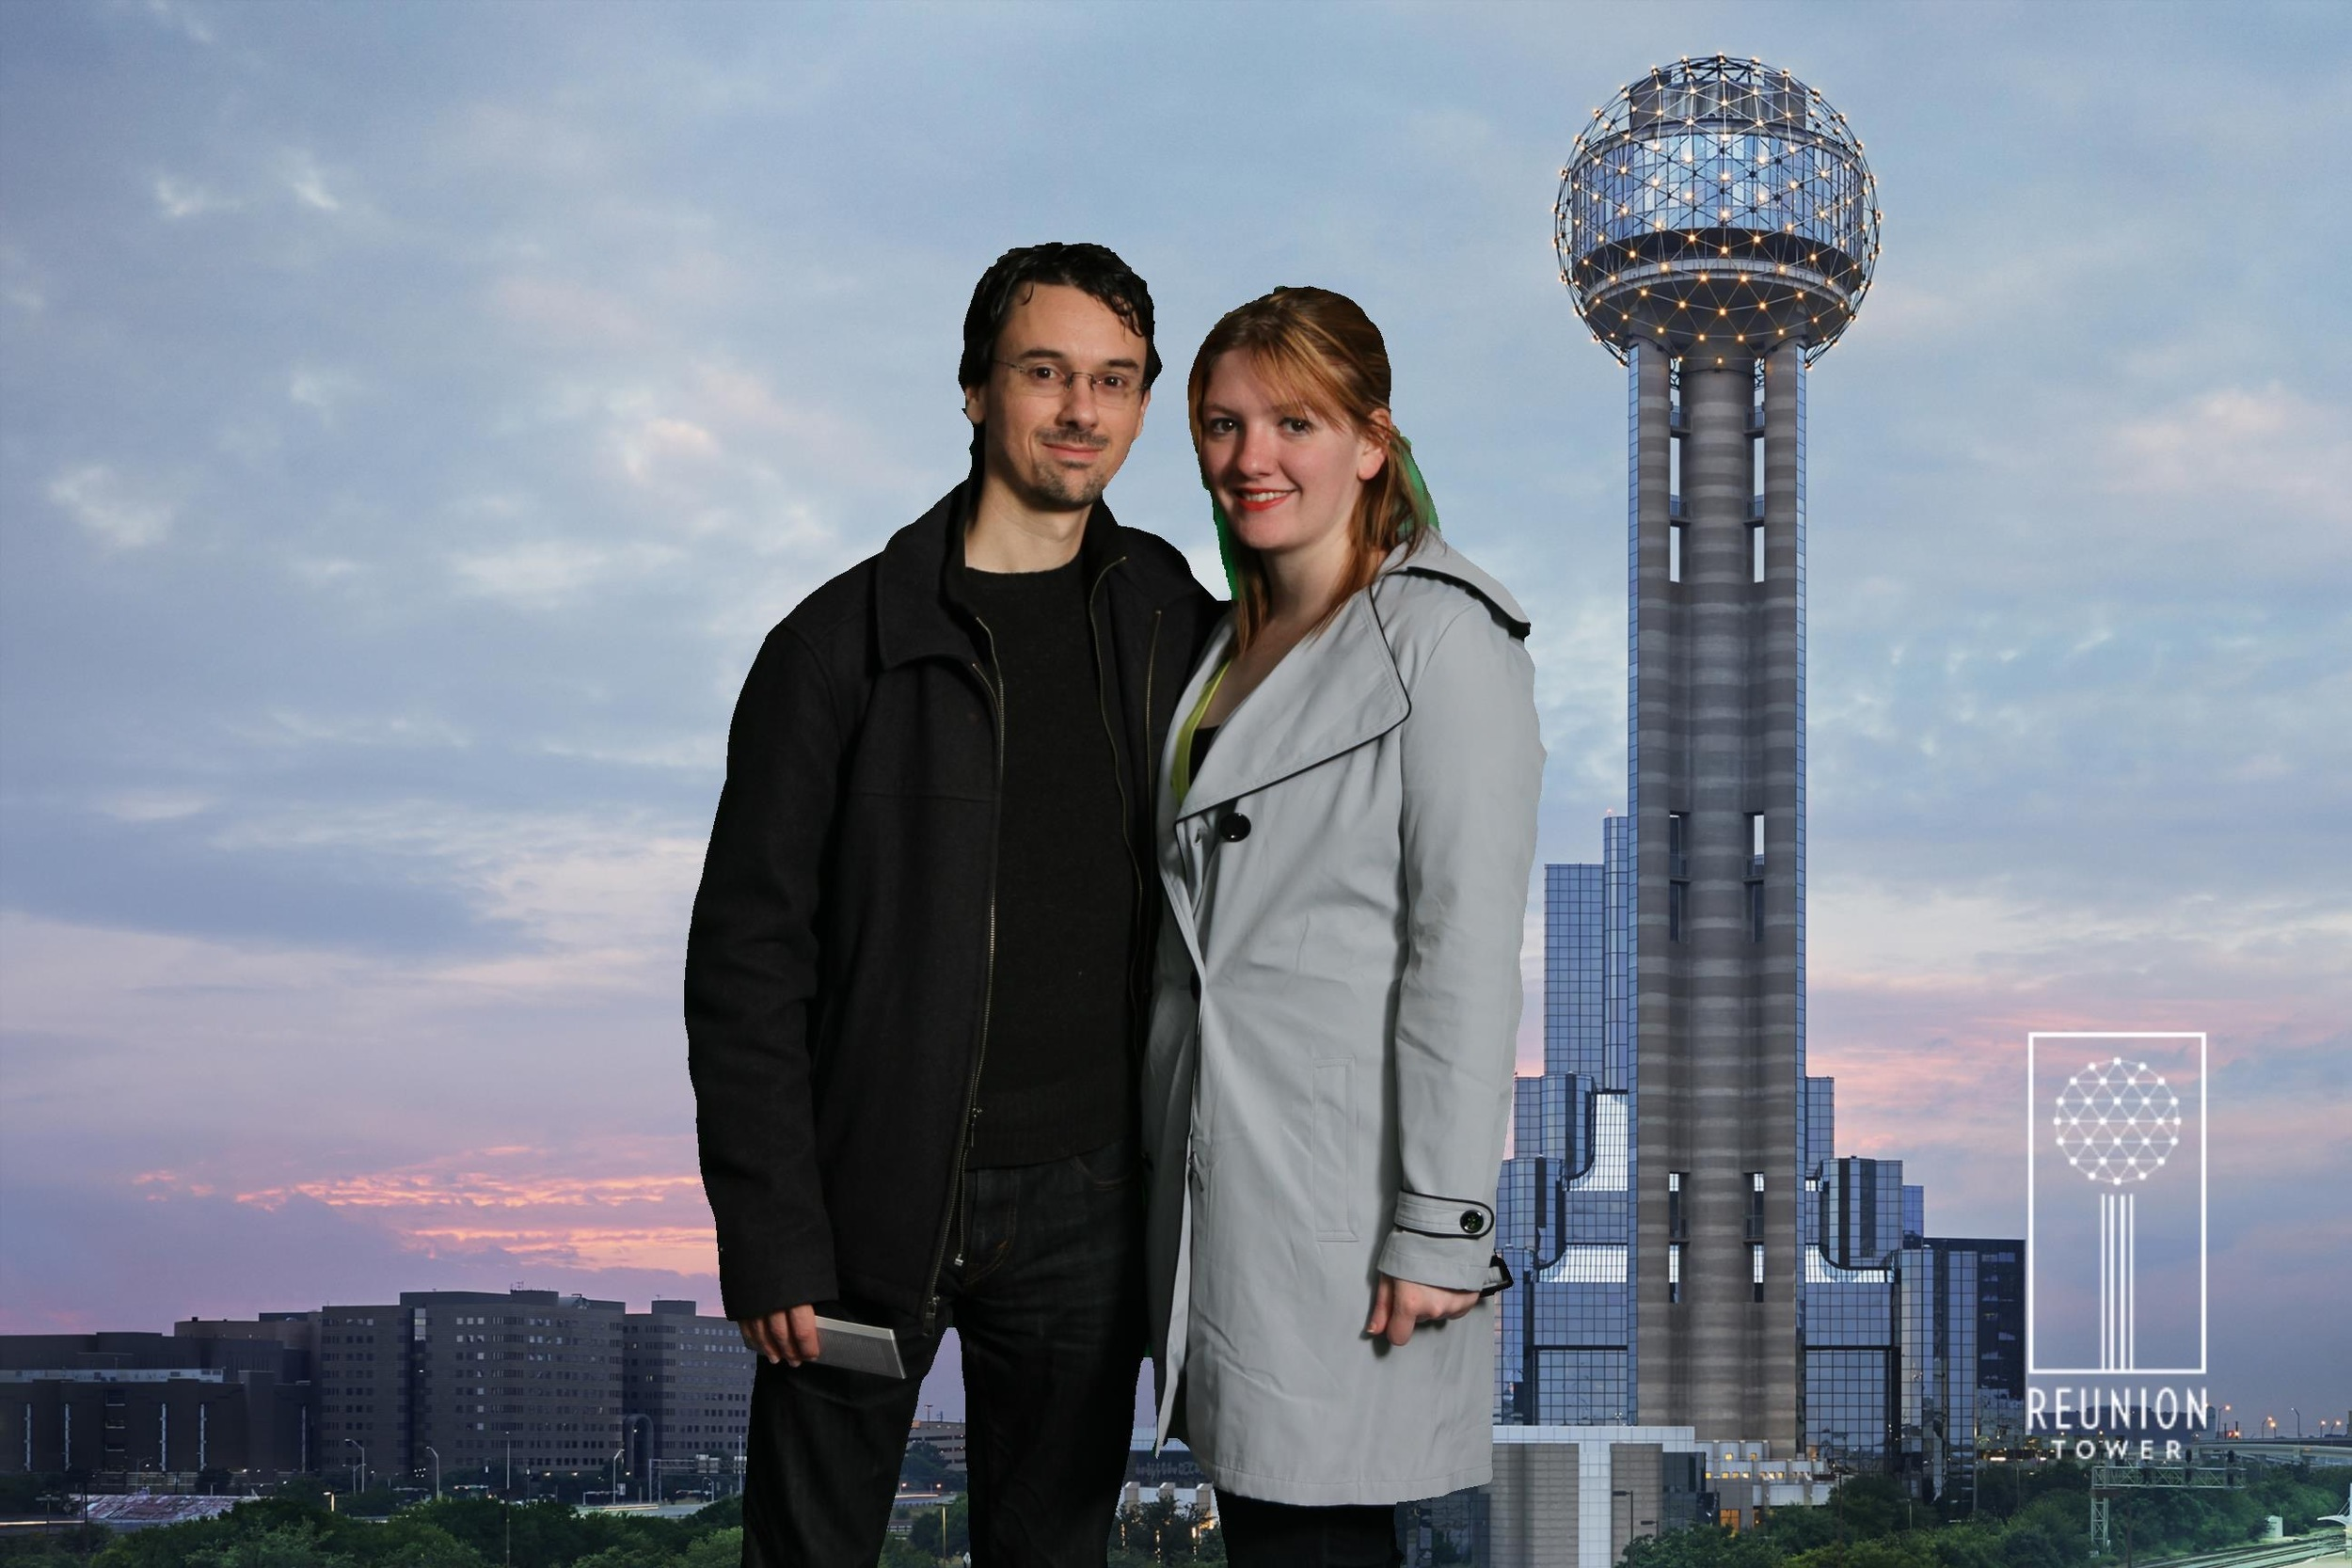 Trip to Reunion Tower